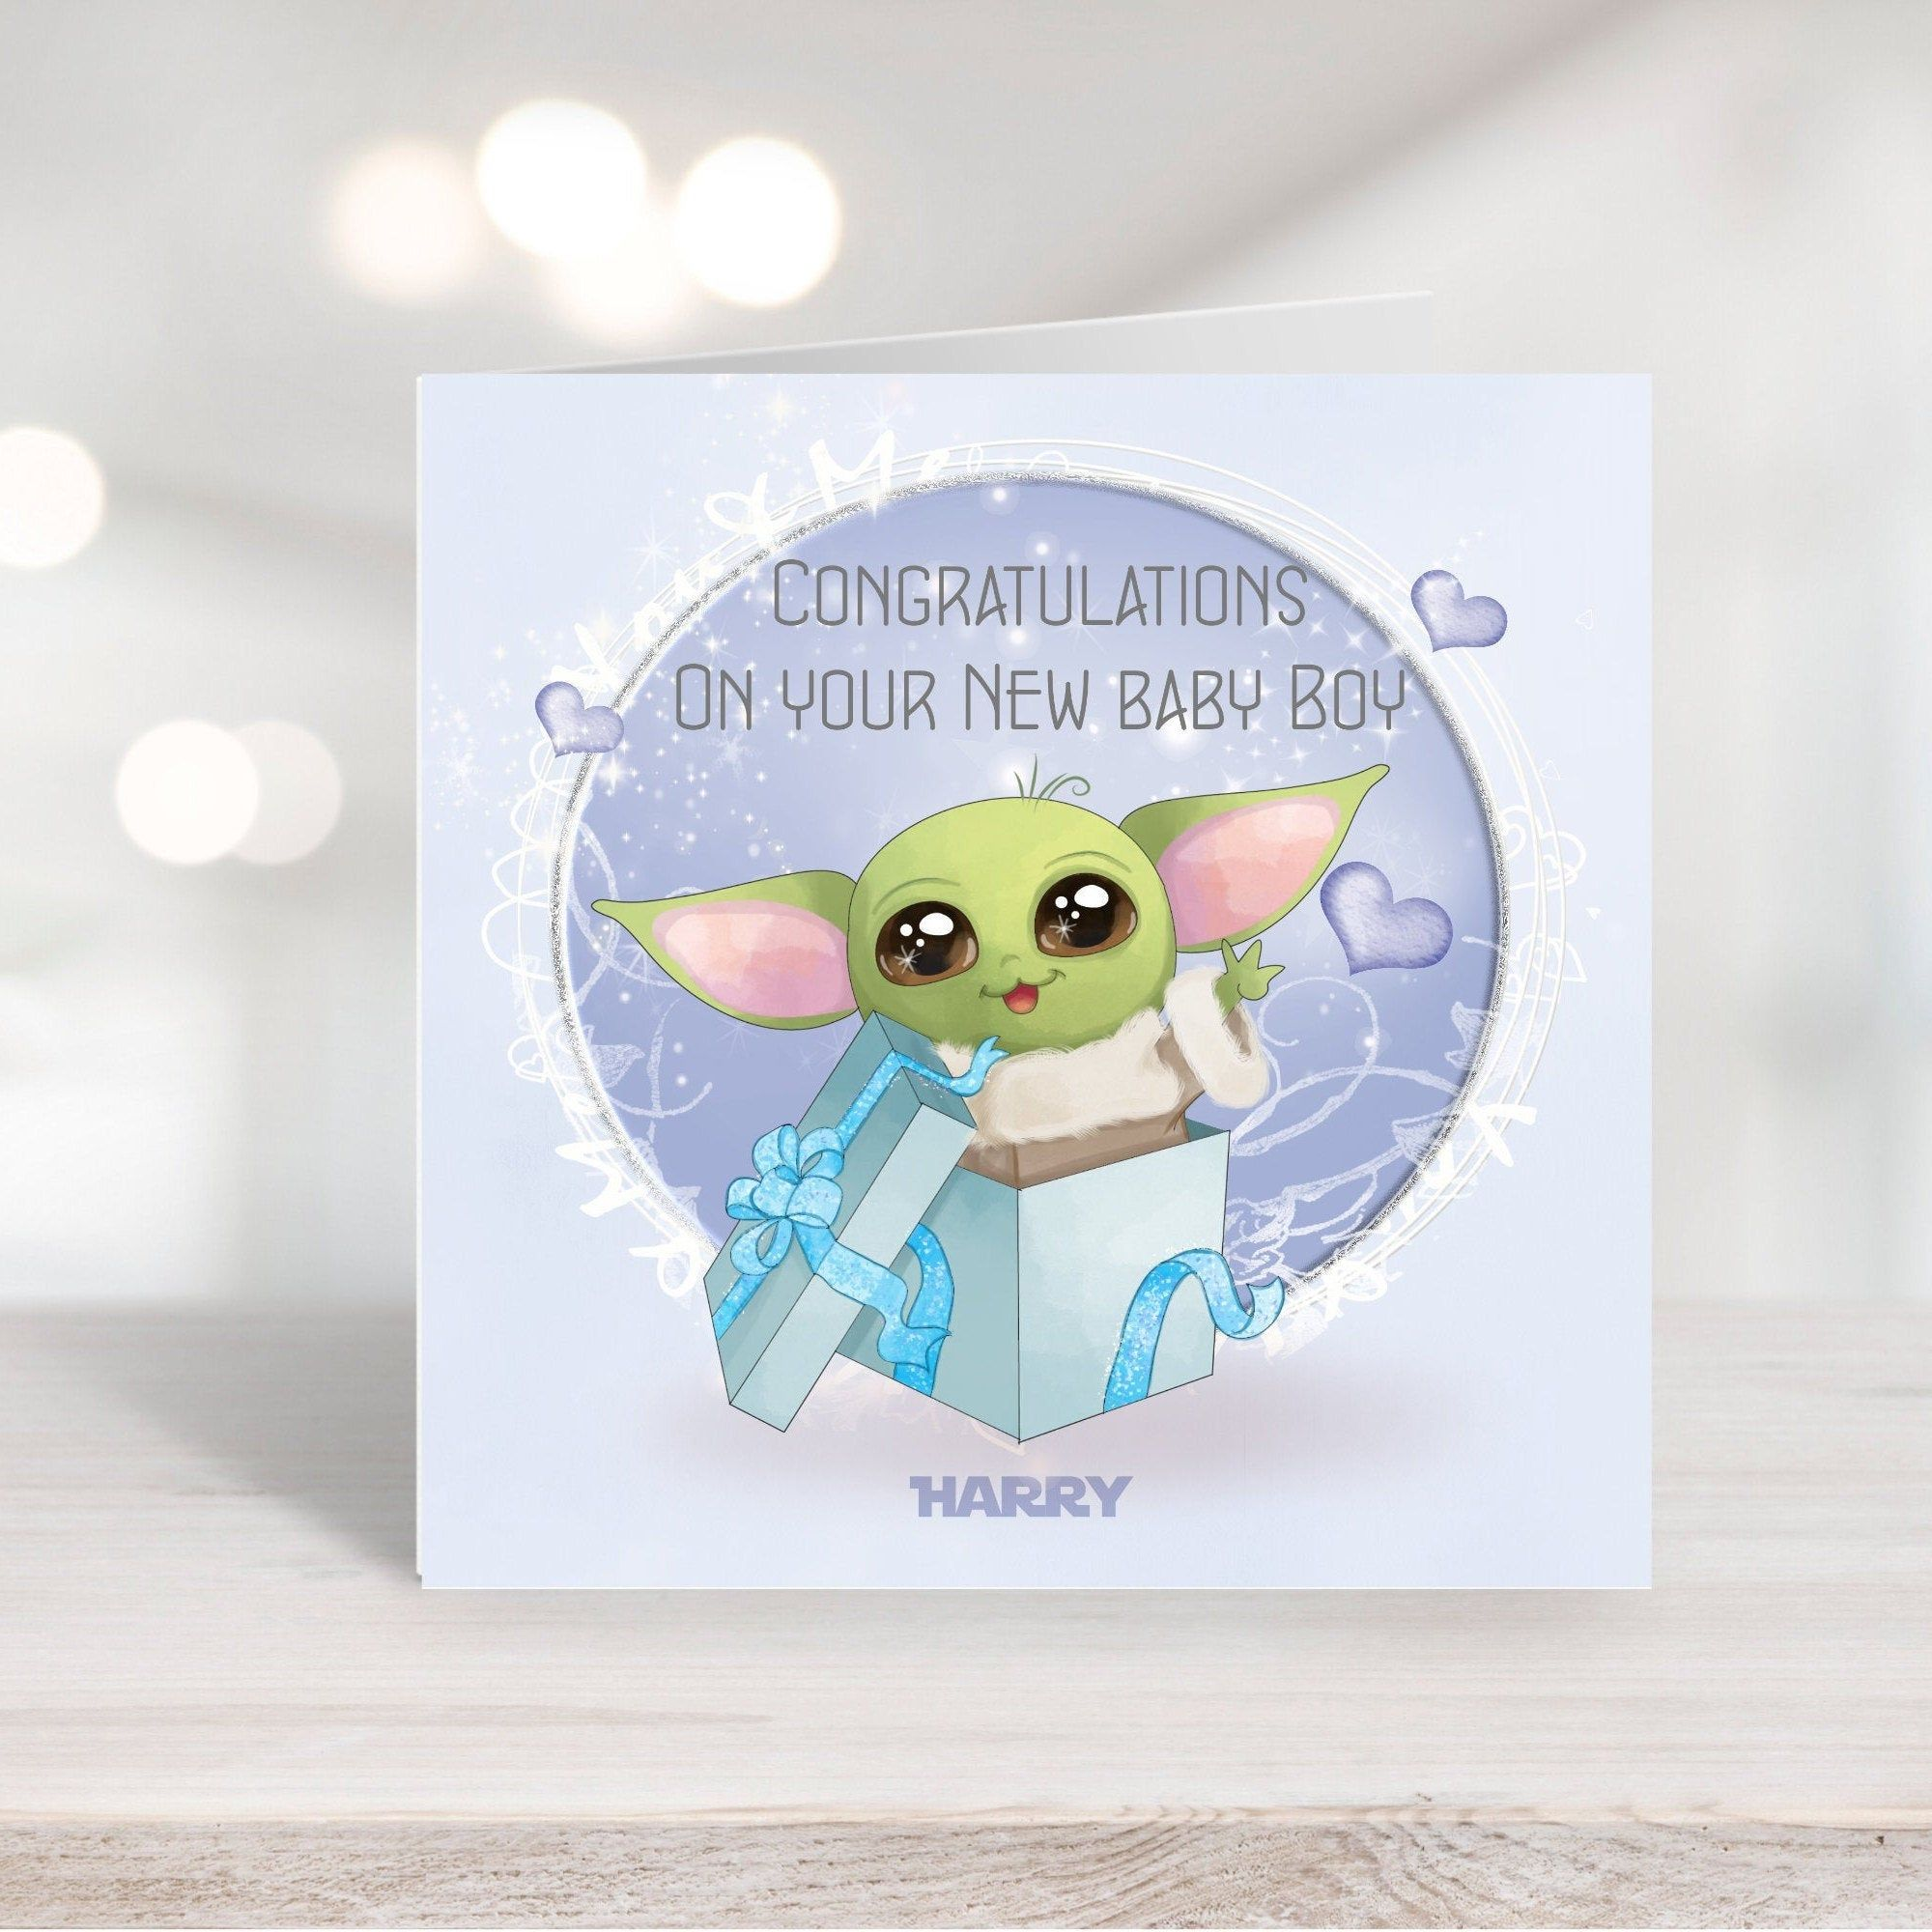 Star Wars Baby Yoda New Baby Arrival Personalised Card Son Daughter Boy Girl Brother Sister By Vanillaskyd New Baby Products Star Wars Baby Baby Arrival